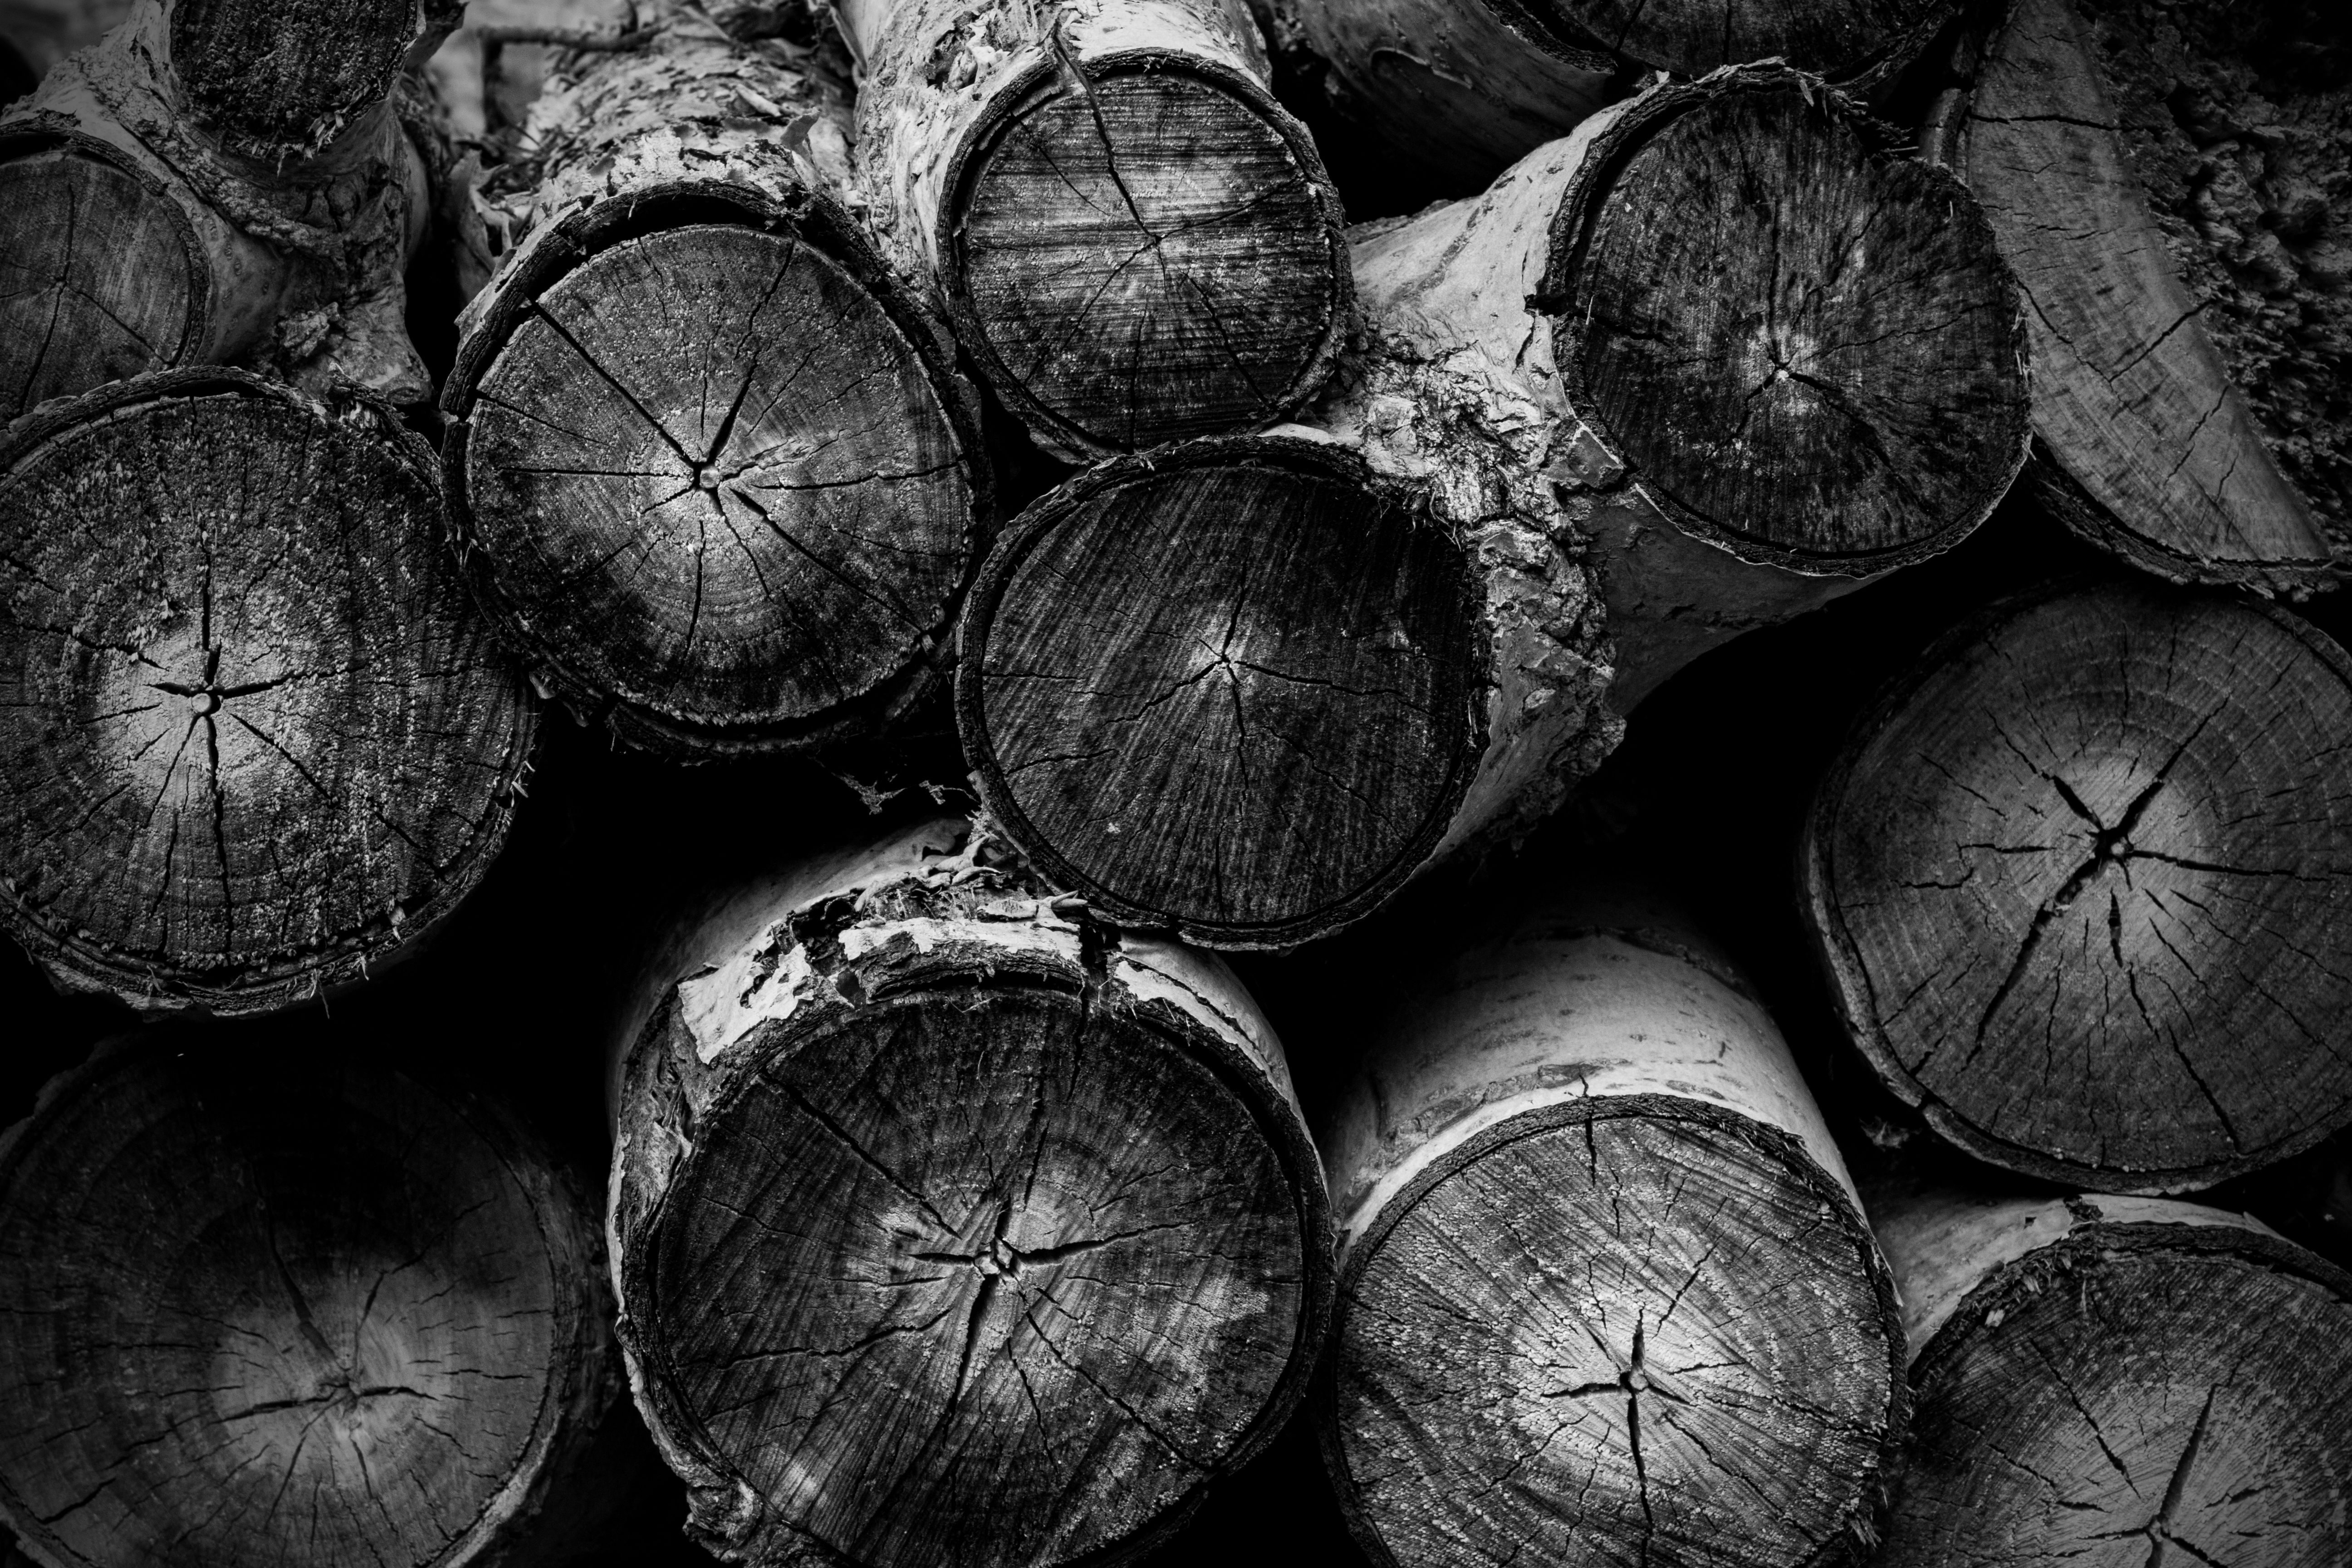 pacing leopard abstracts wood pile | abstract photography